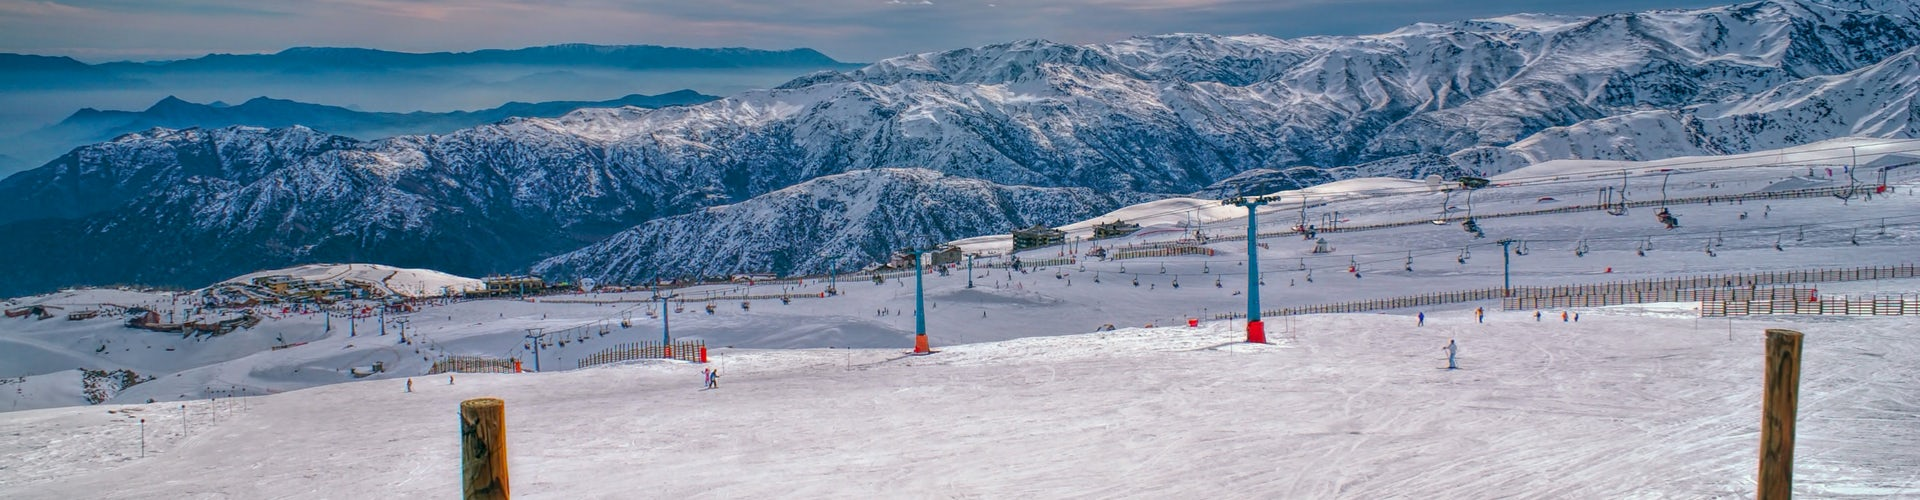 Valle Nevado Pistas Adobestock 77154966